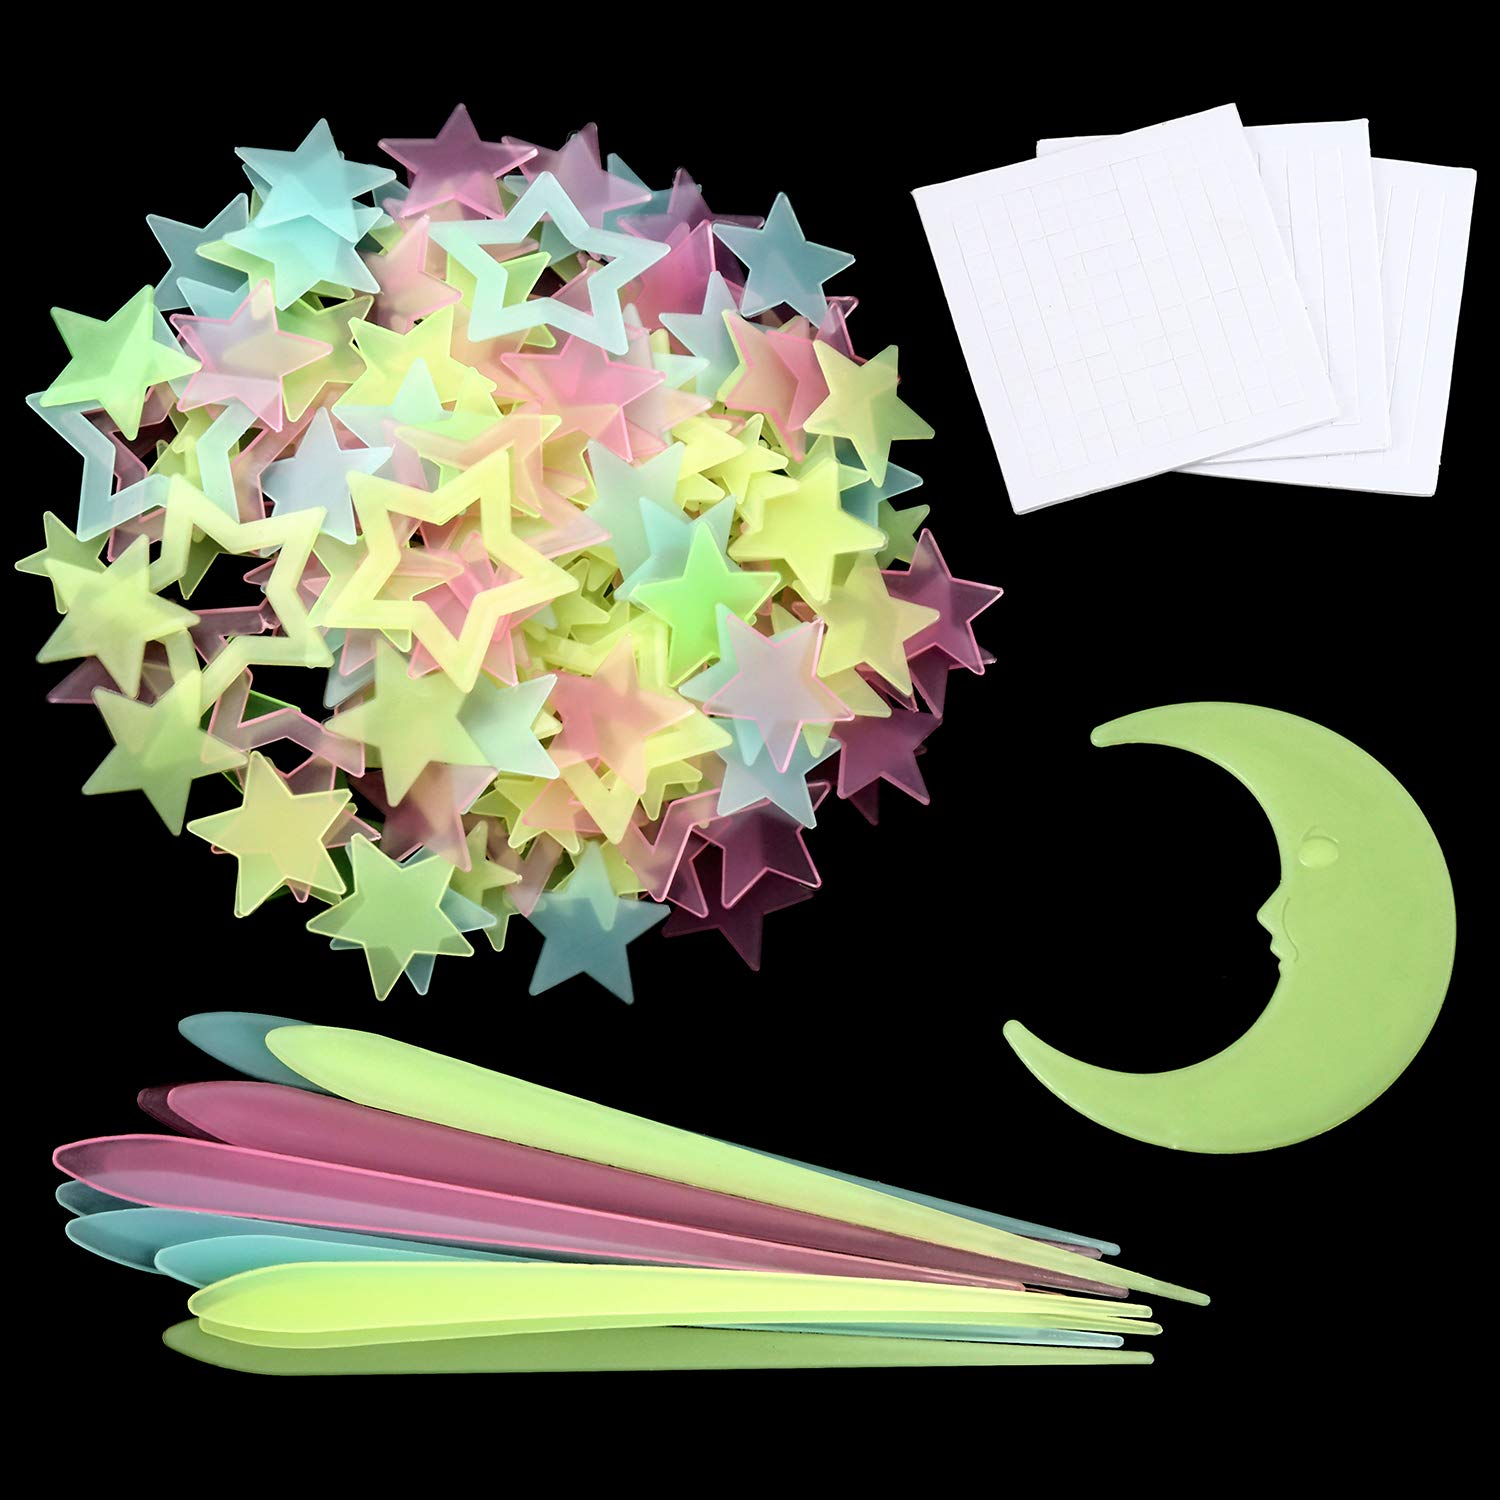 253 Pieces Glow bei Dark Stars Stickers 3D Ceiling Star Decals Stars Meteor und Moon Wall Stickers für Bedroom Ceiling Wall Decorations